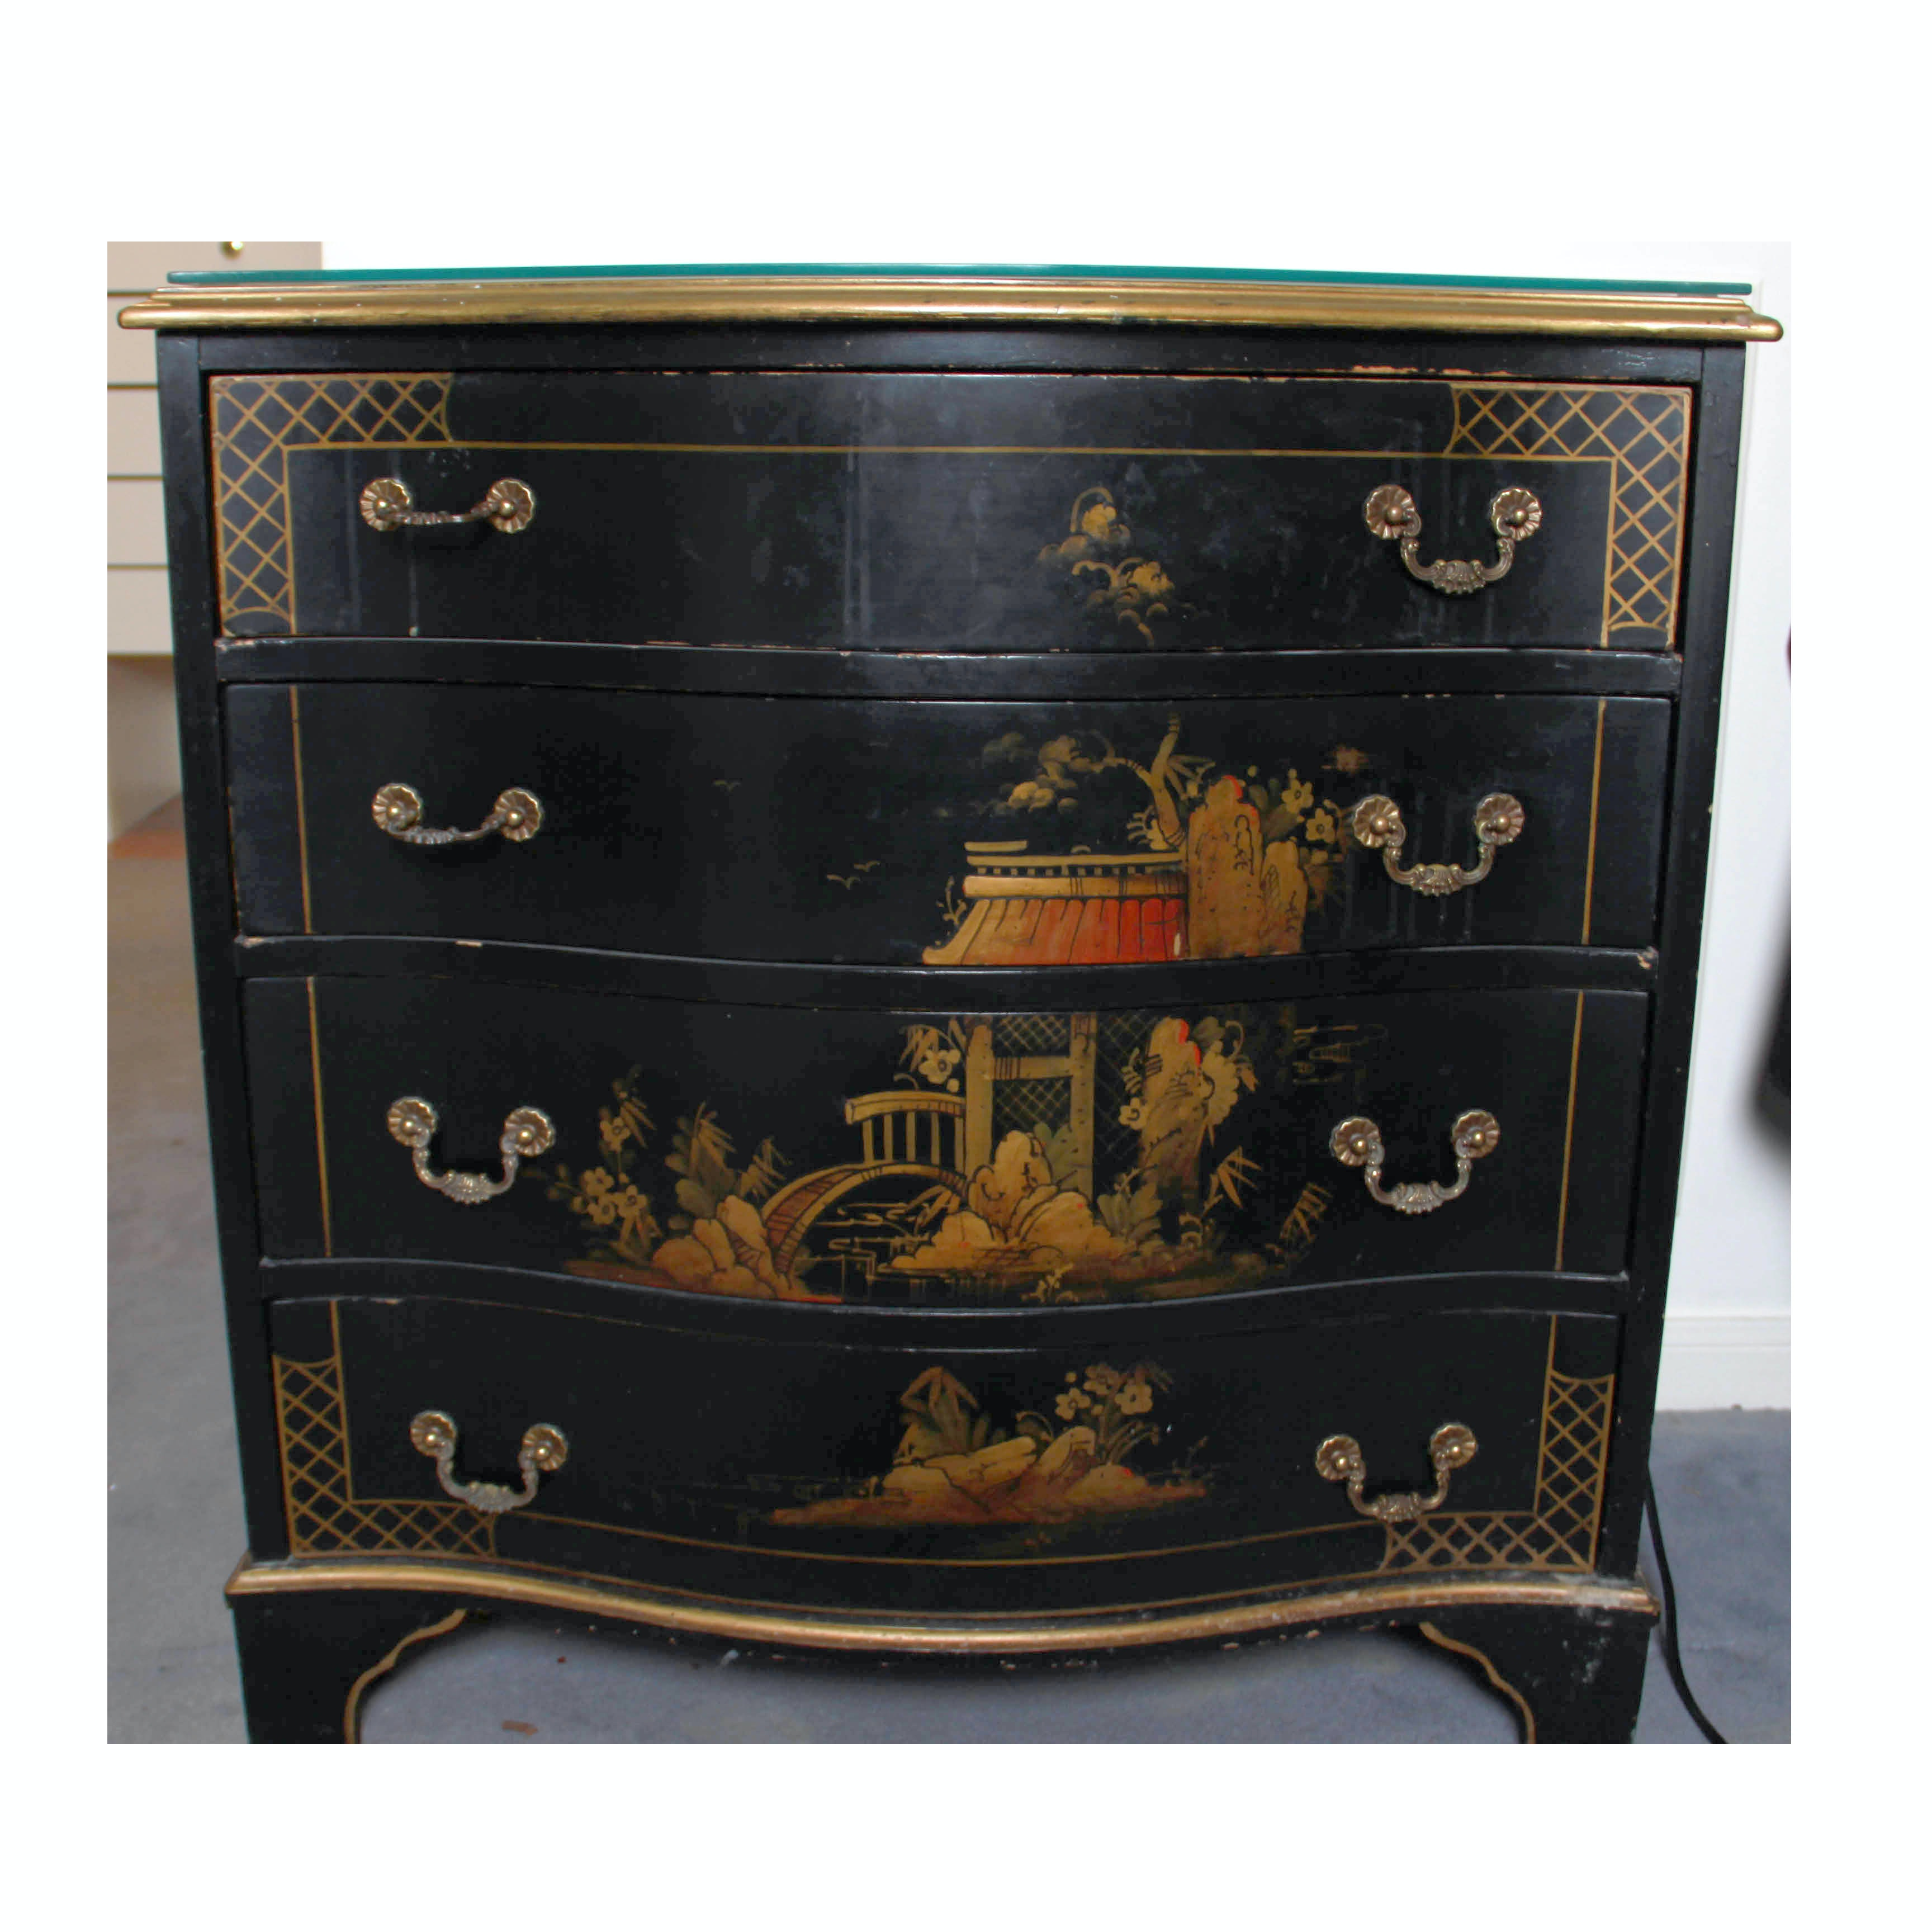 Vintage Black Lacquer Chinoiserie Chest of Drawers